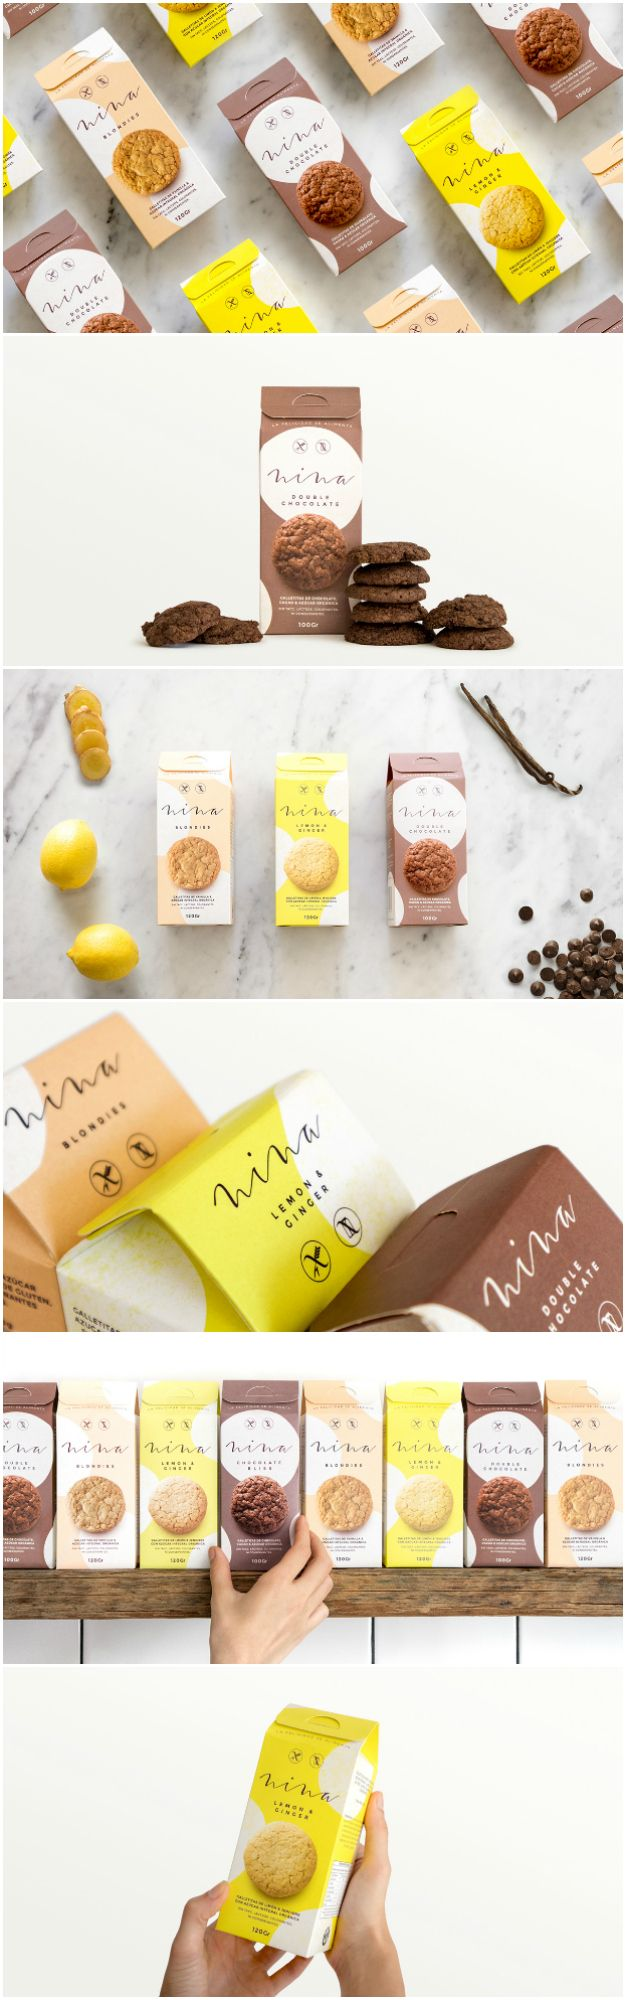 Visual Brand Identity and Design for Healthy Handmade Tasty Cookies  Design Agency:Asís Project name:Nina Location: Argentina Category: #Bakery #cookies   World Brand & Packaging Design Society